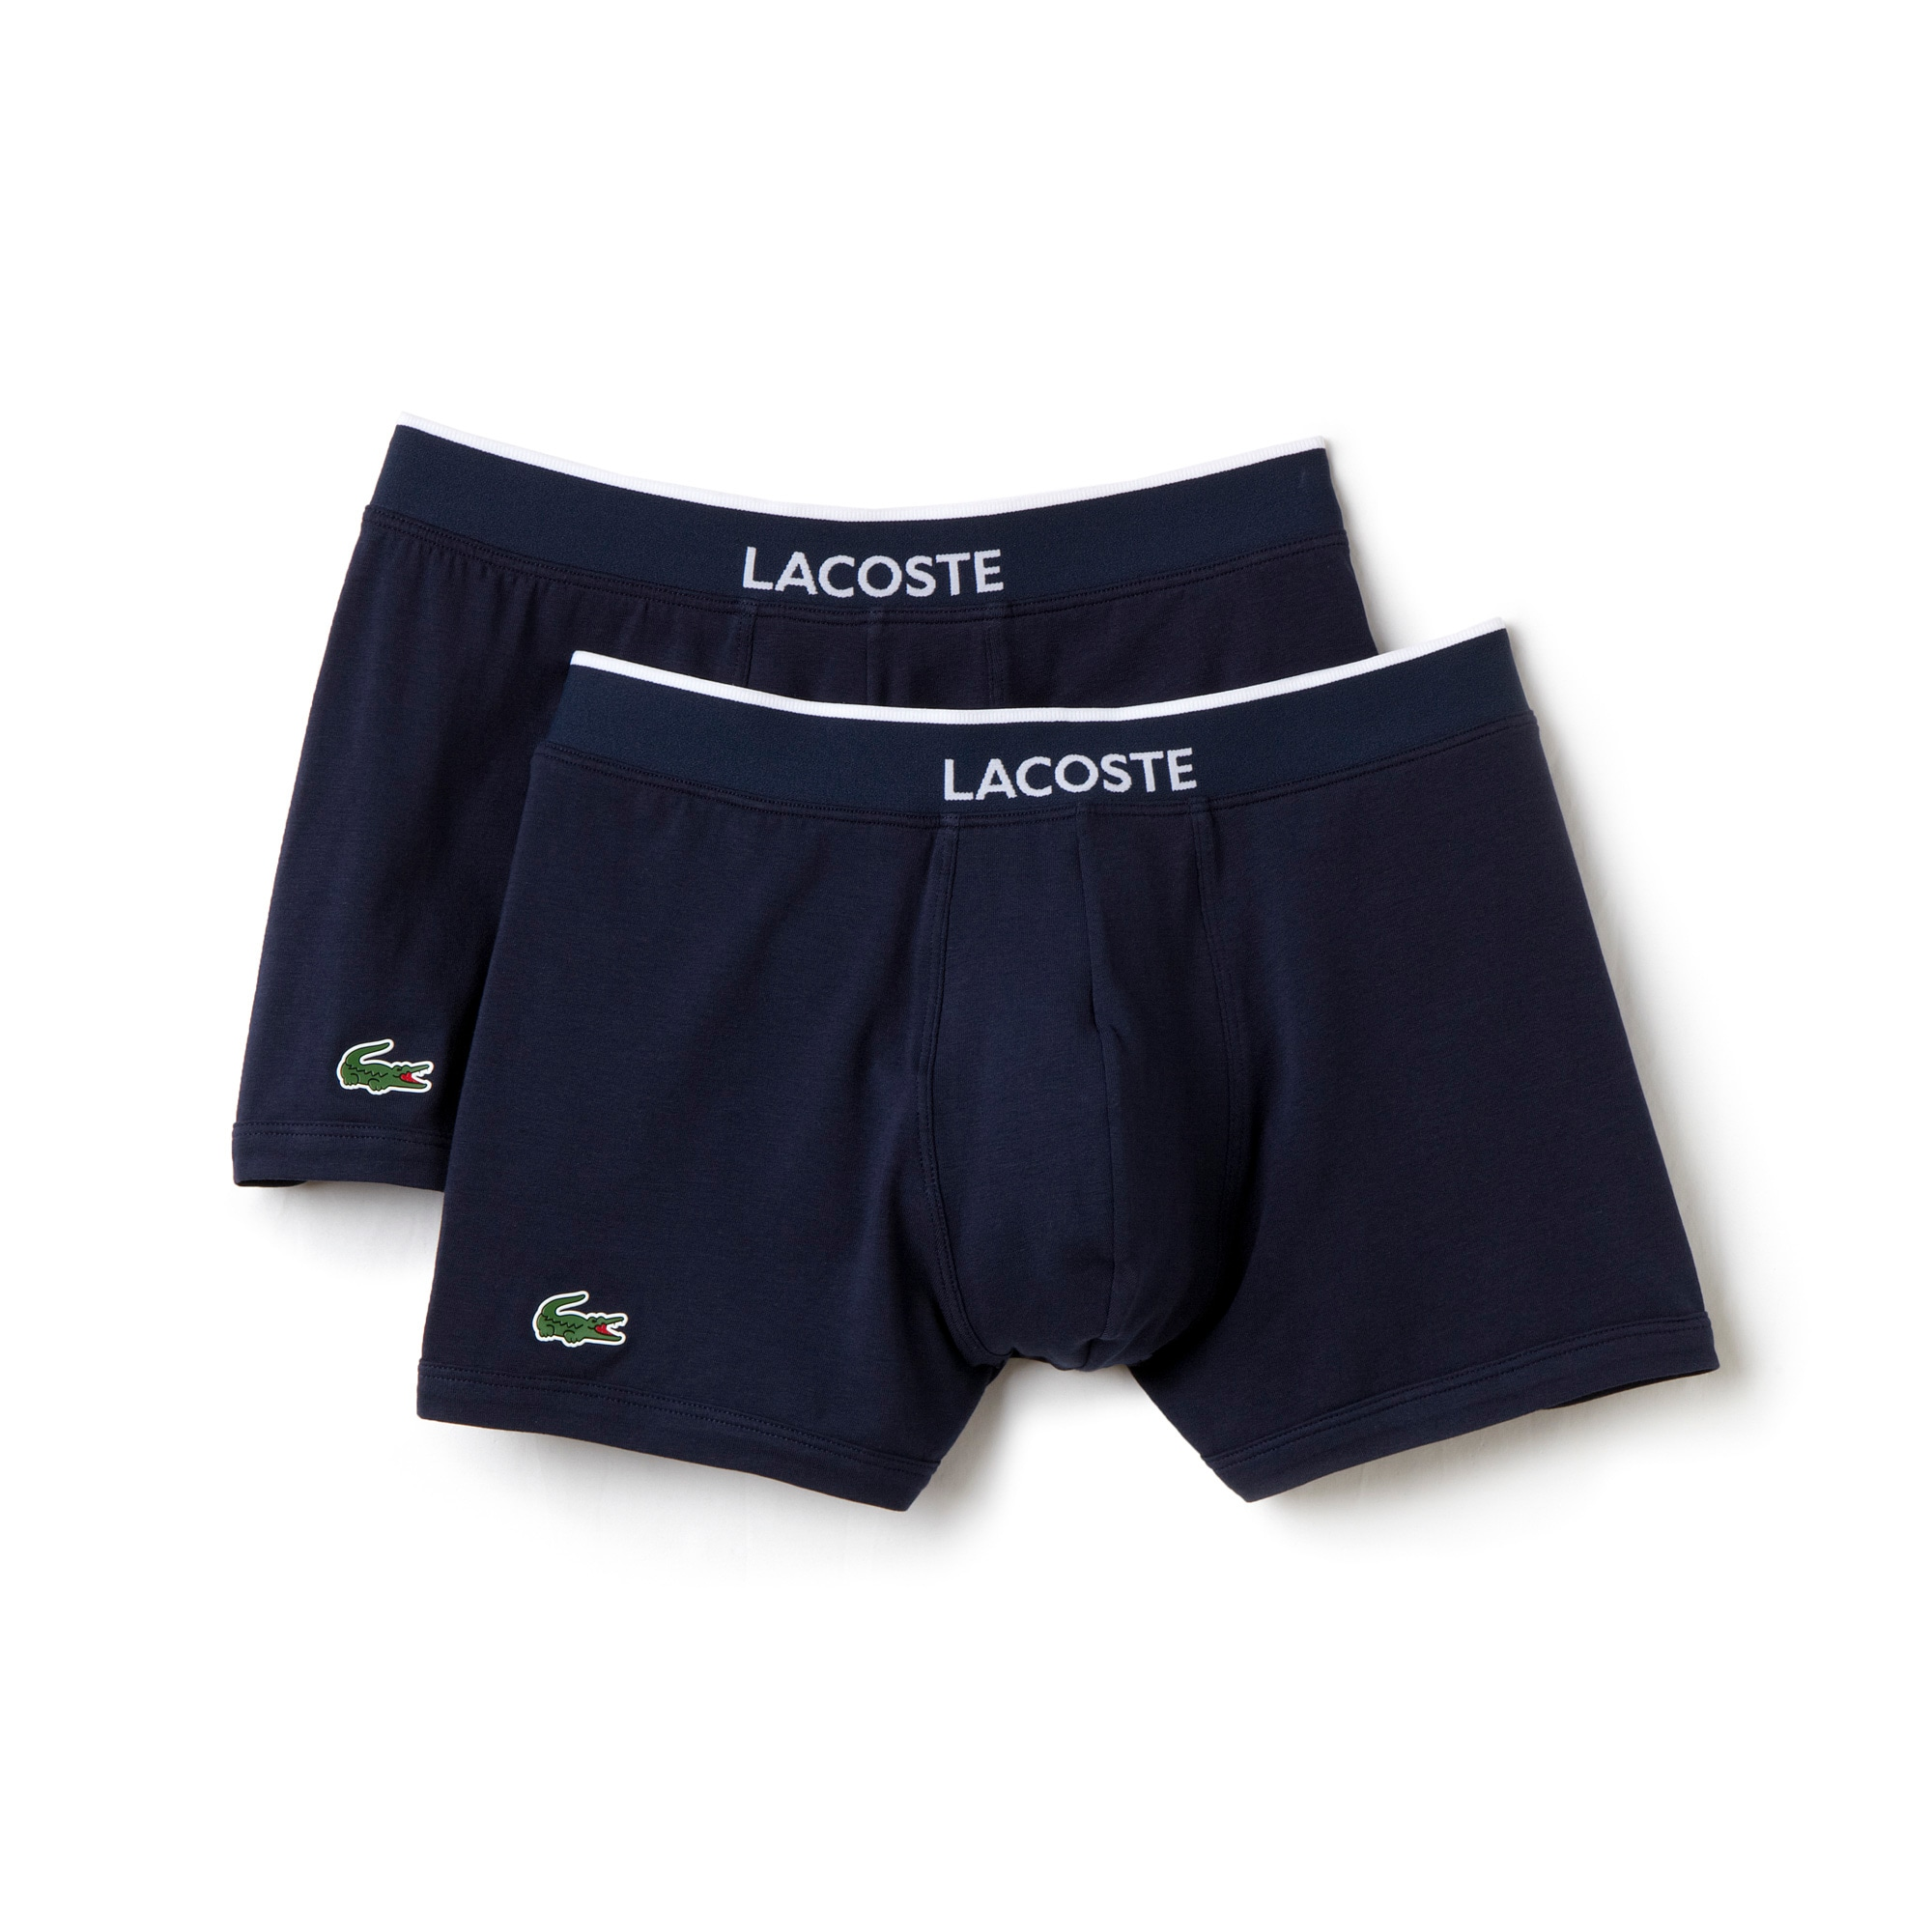 2-er Pack Colours Eng Anliegende Boxershorts